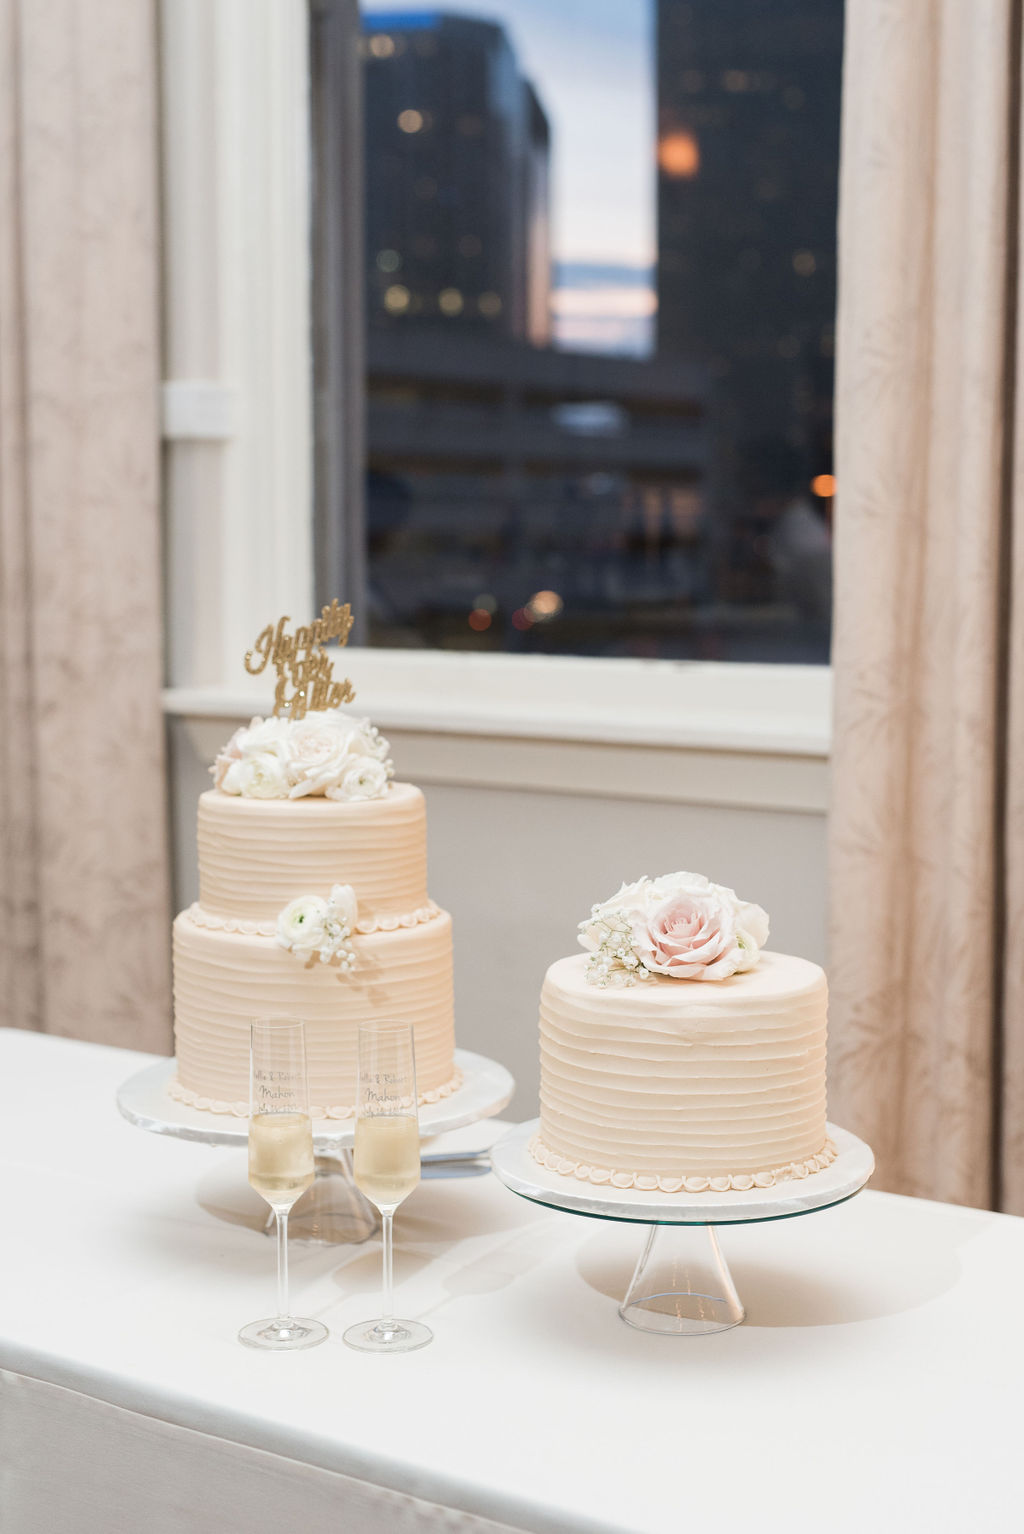 Simple wedding cake table: Dusty Blue and Blush Wedding at The Room on Main featured on Alexa Kay Events!